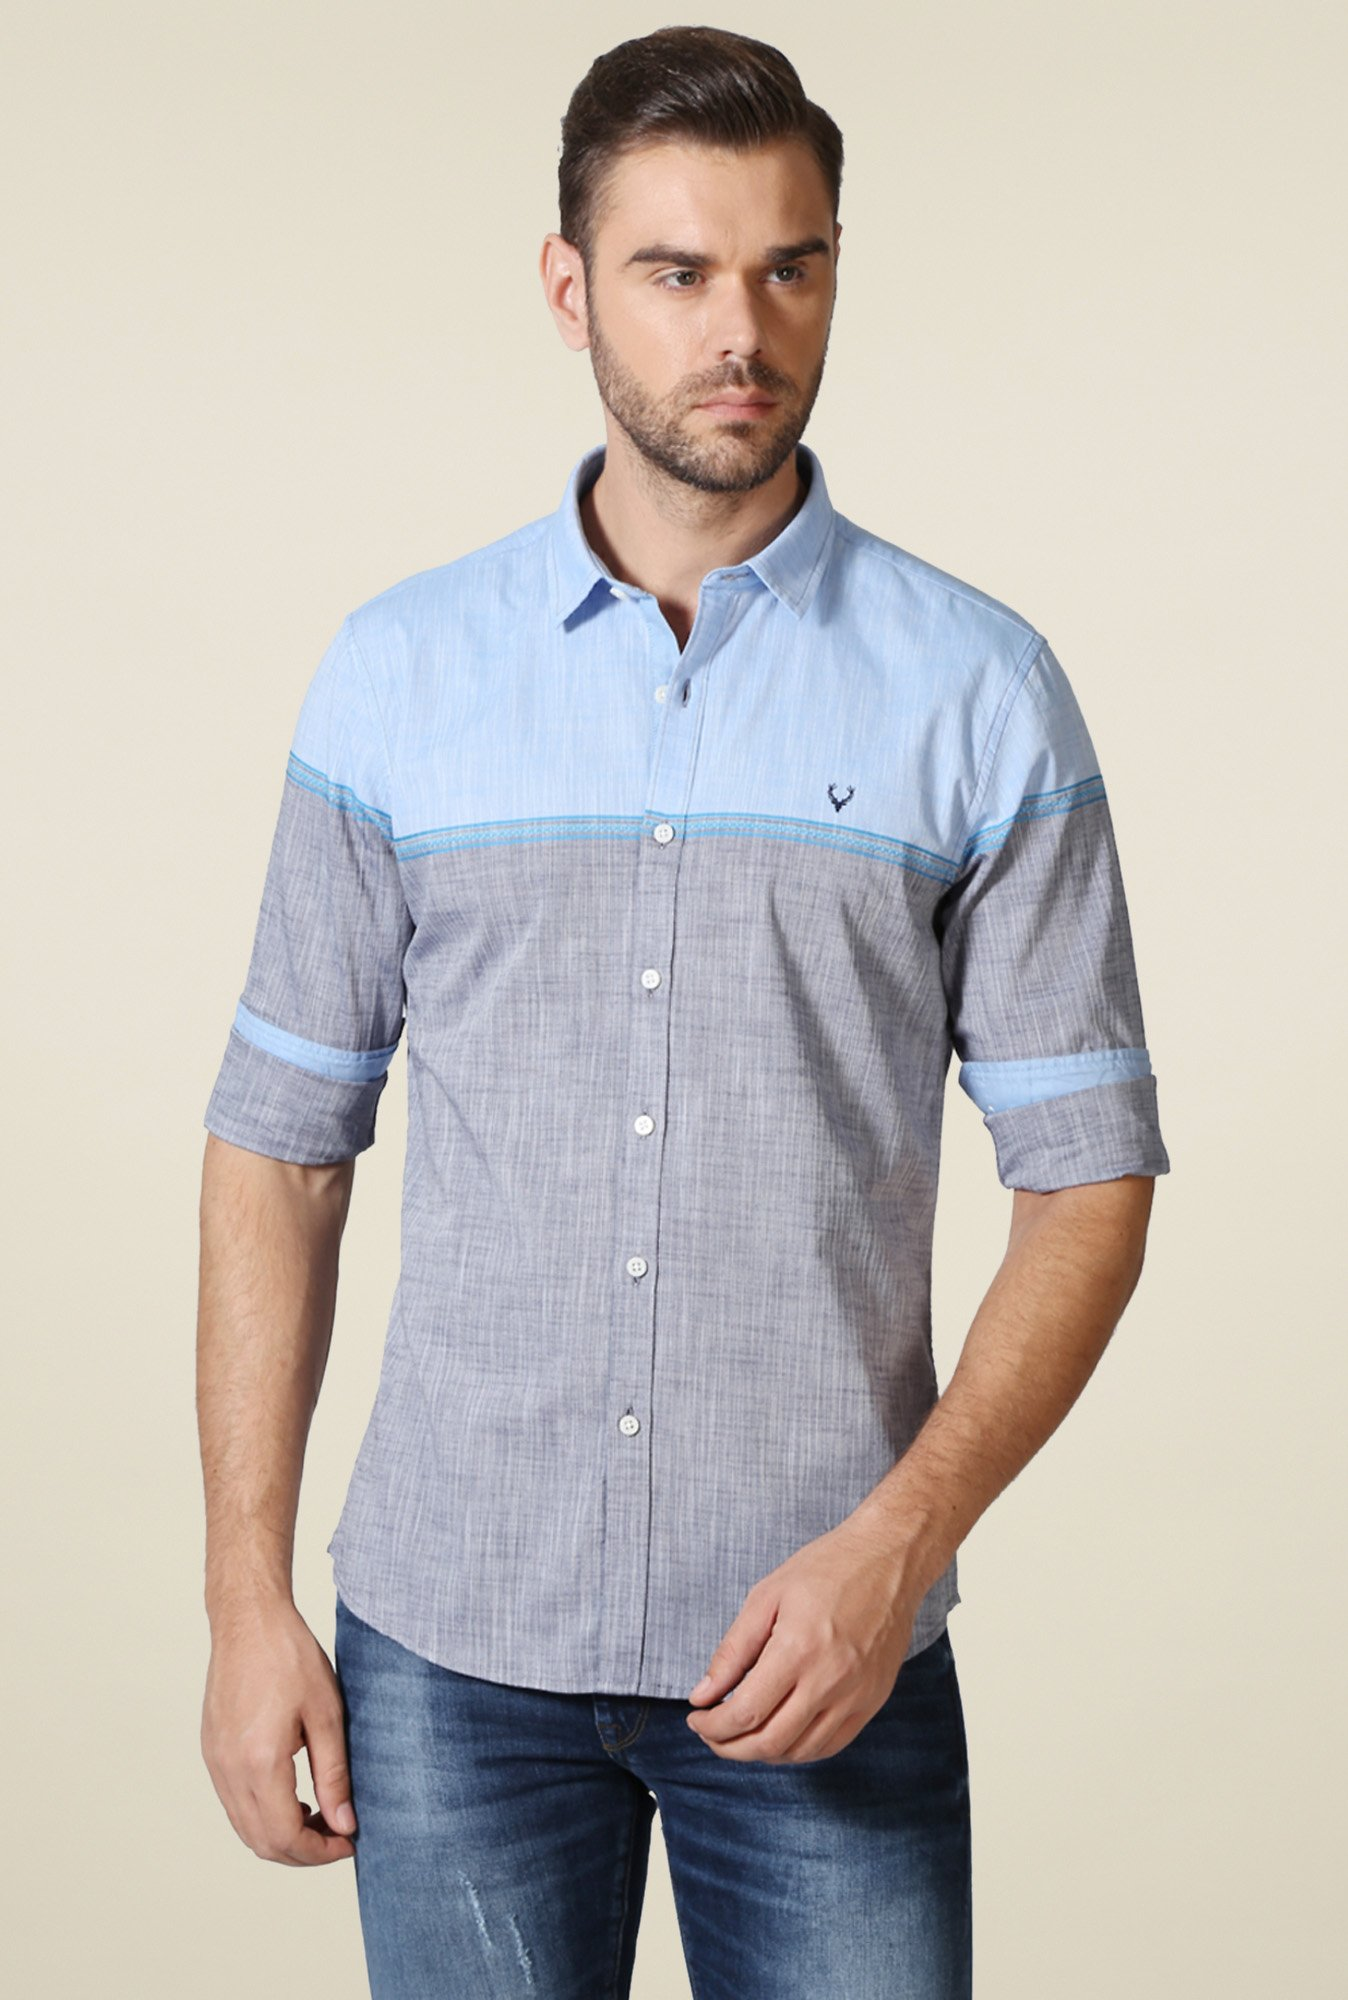 Allen Solly Grey Shirt Collar Full Sleeves Shirt